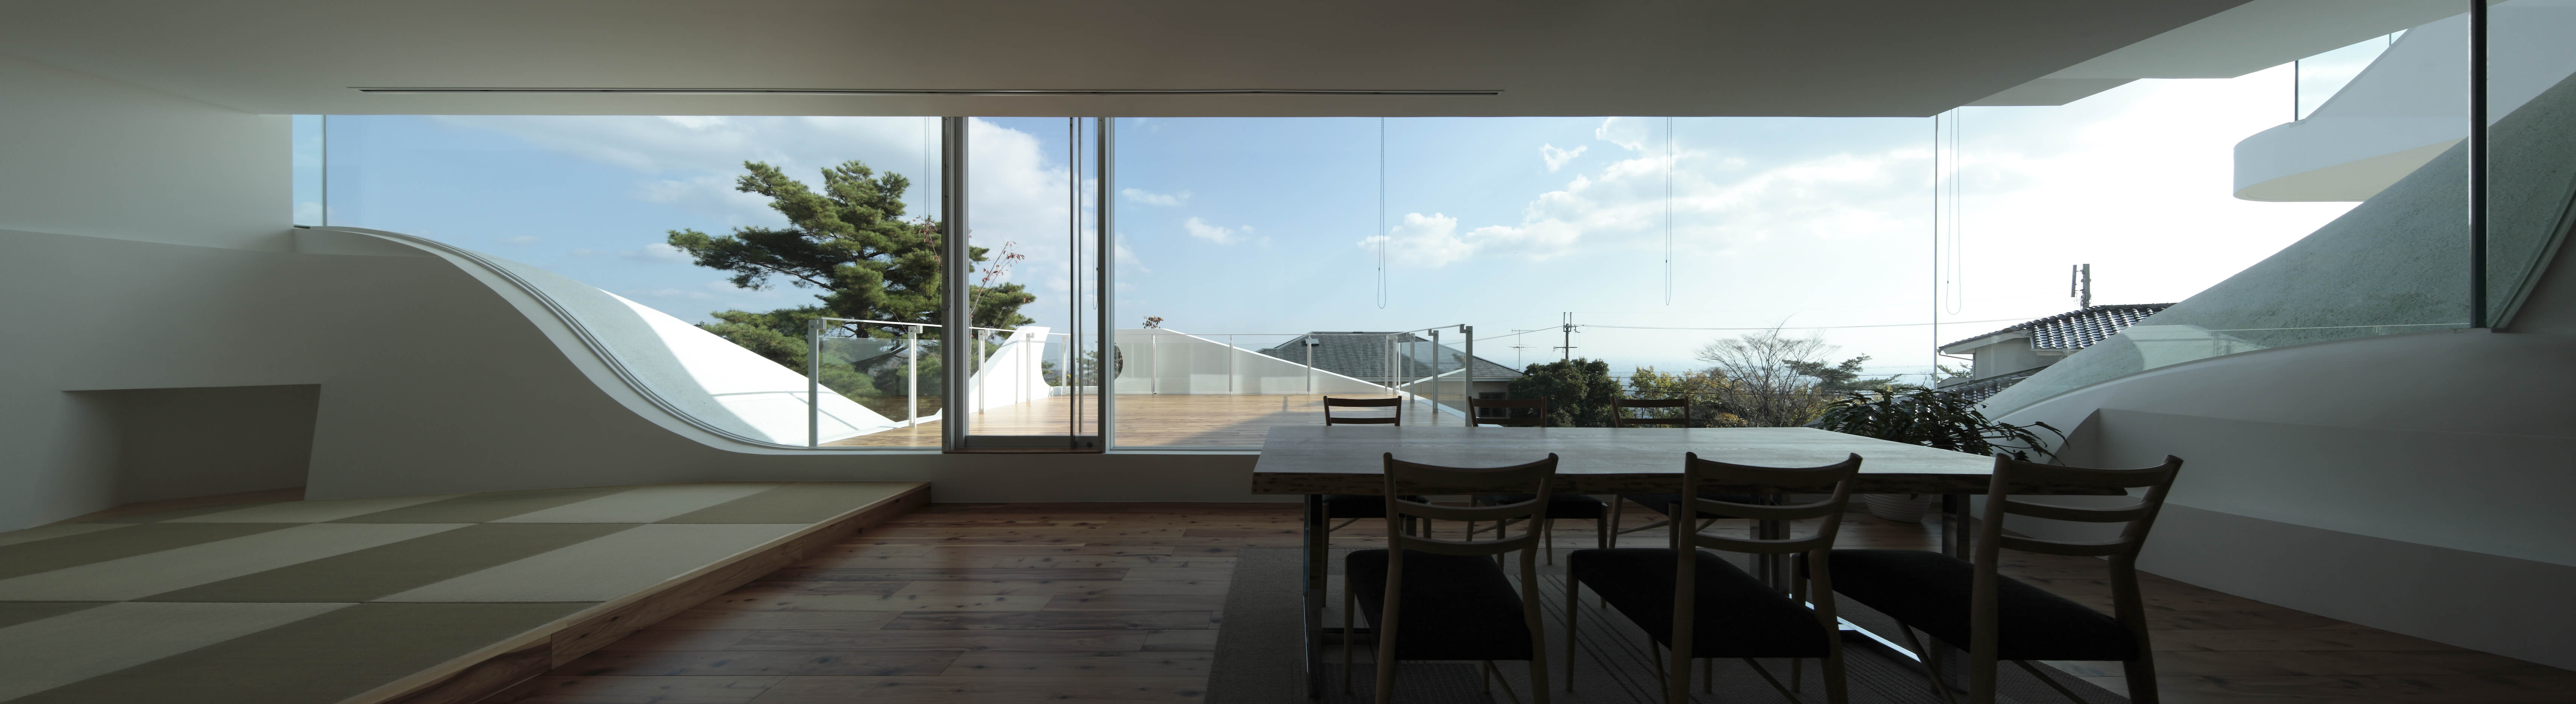 Close view of the dining area, highlighting the views afforded from nearly any space within the home.